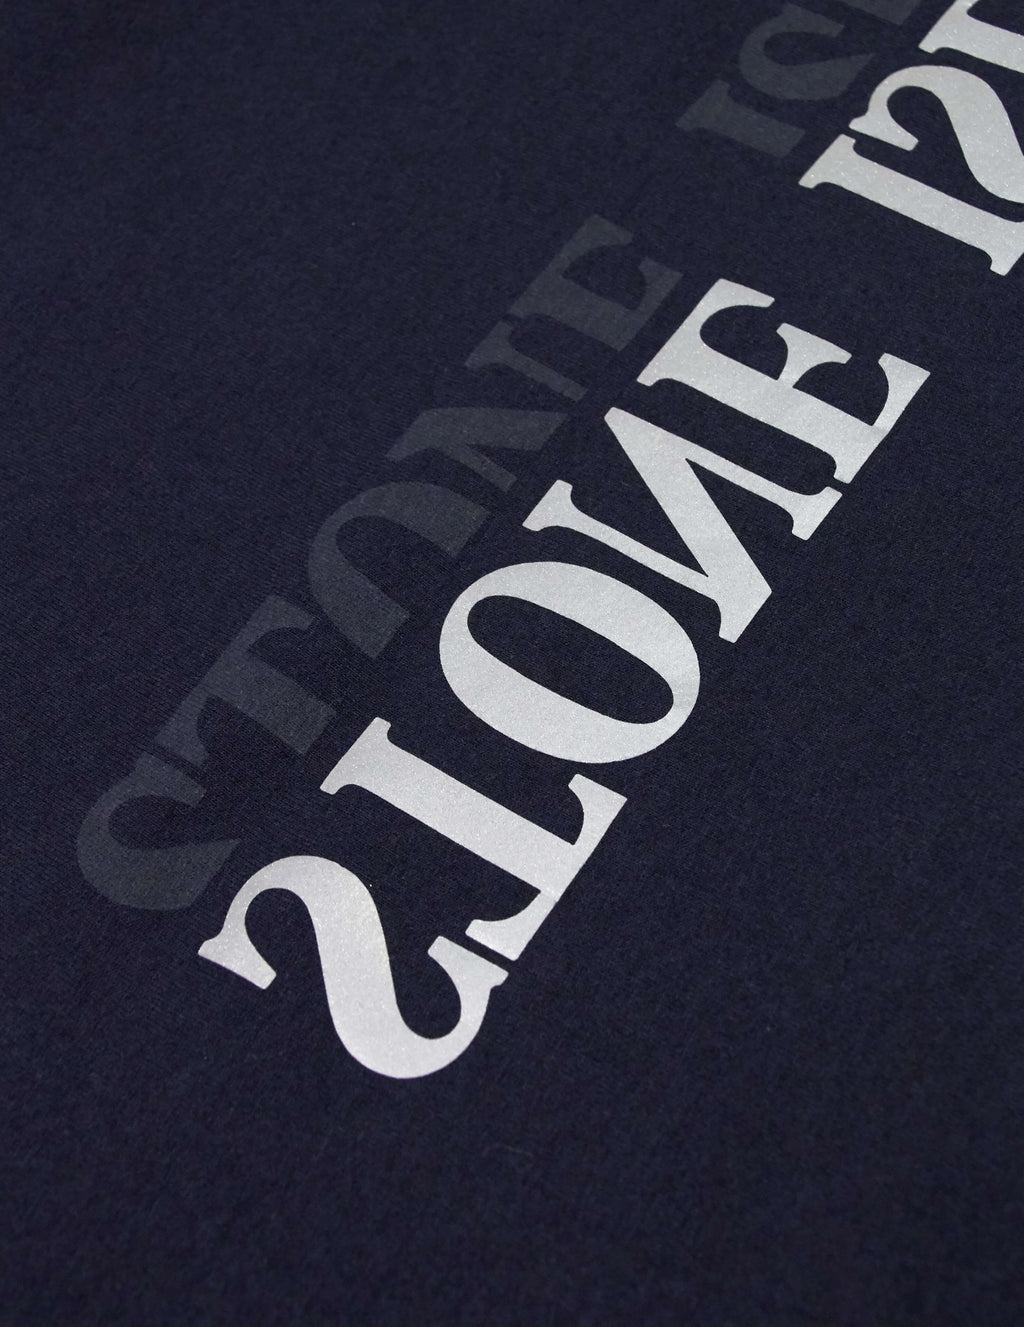 Stone Island Men's Giulio Fashion Navy Blue Reflective Logo T-Shirt 70152NS88V0020